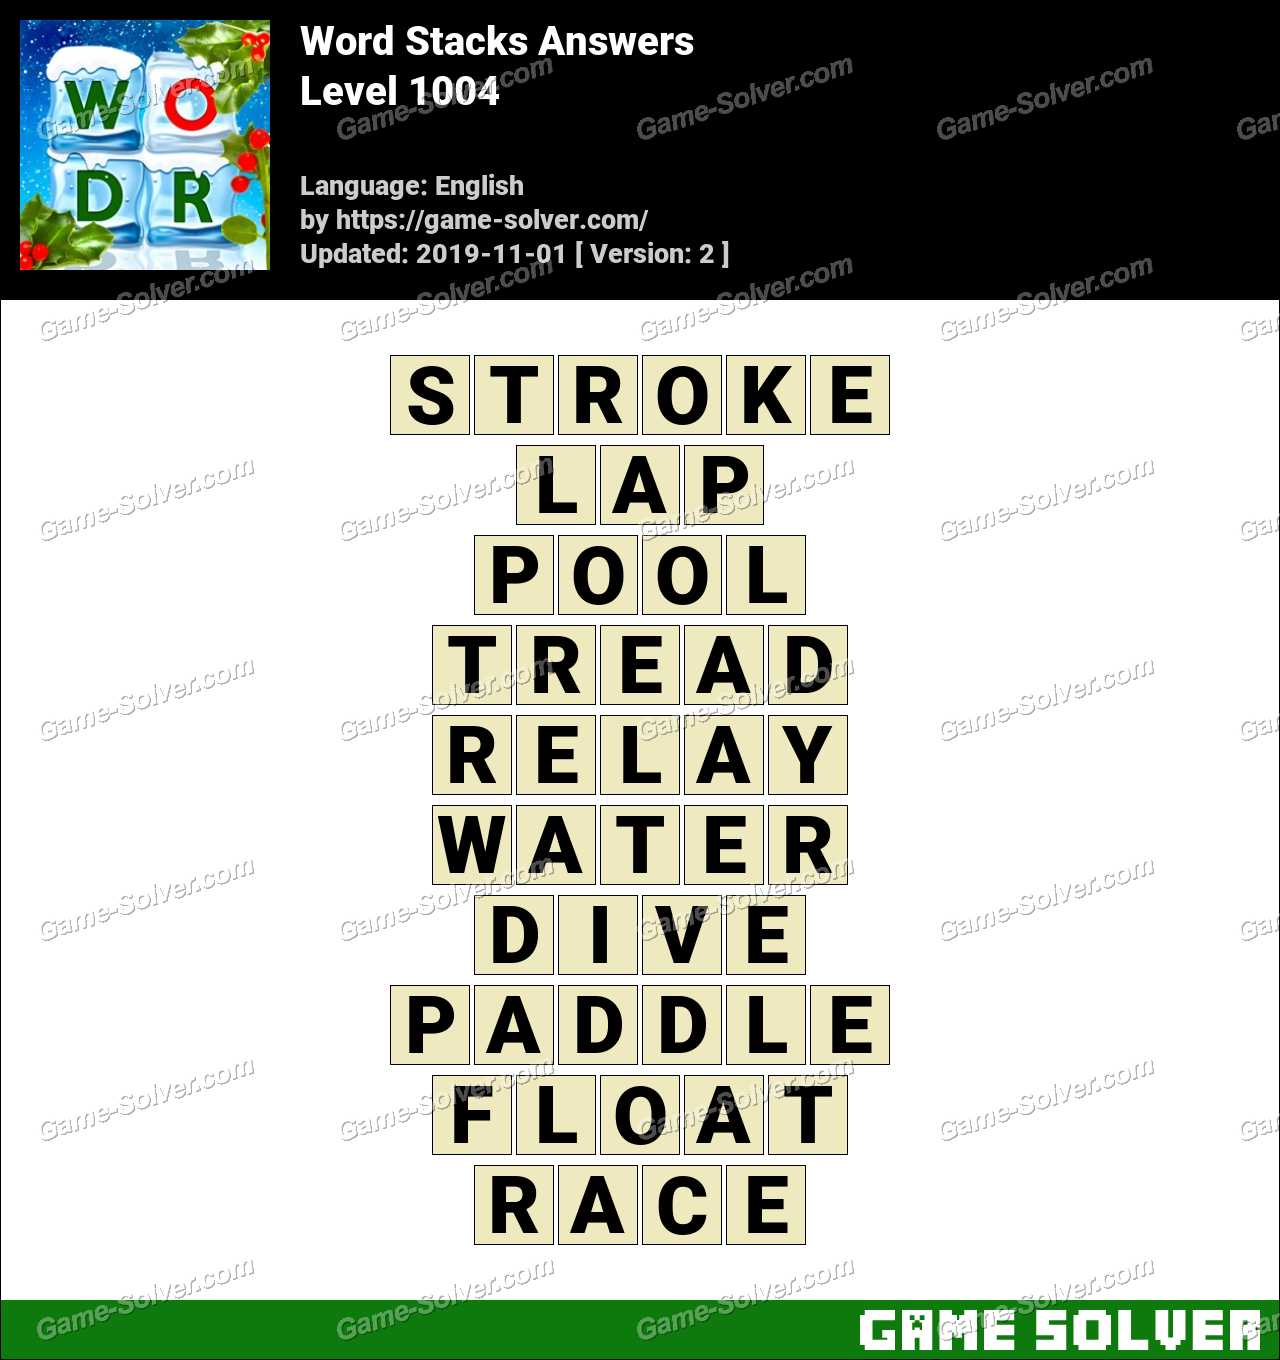 Word Stacks Level 1004 Answers